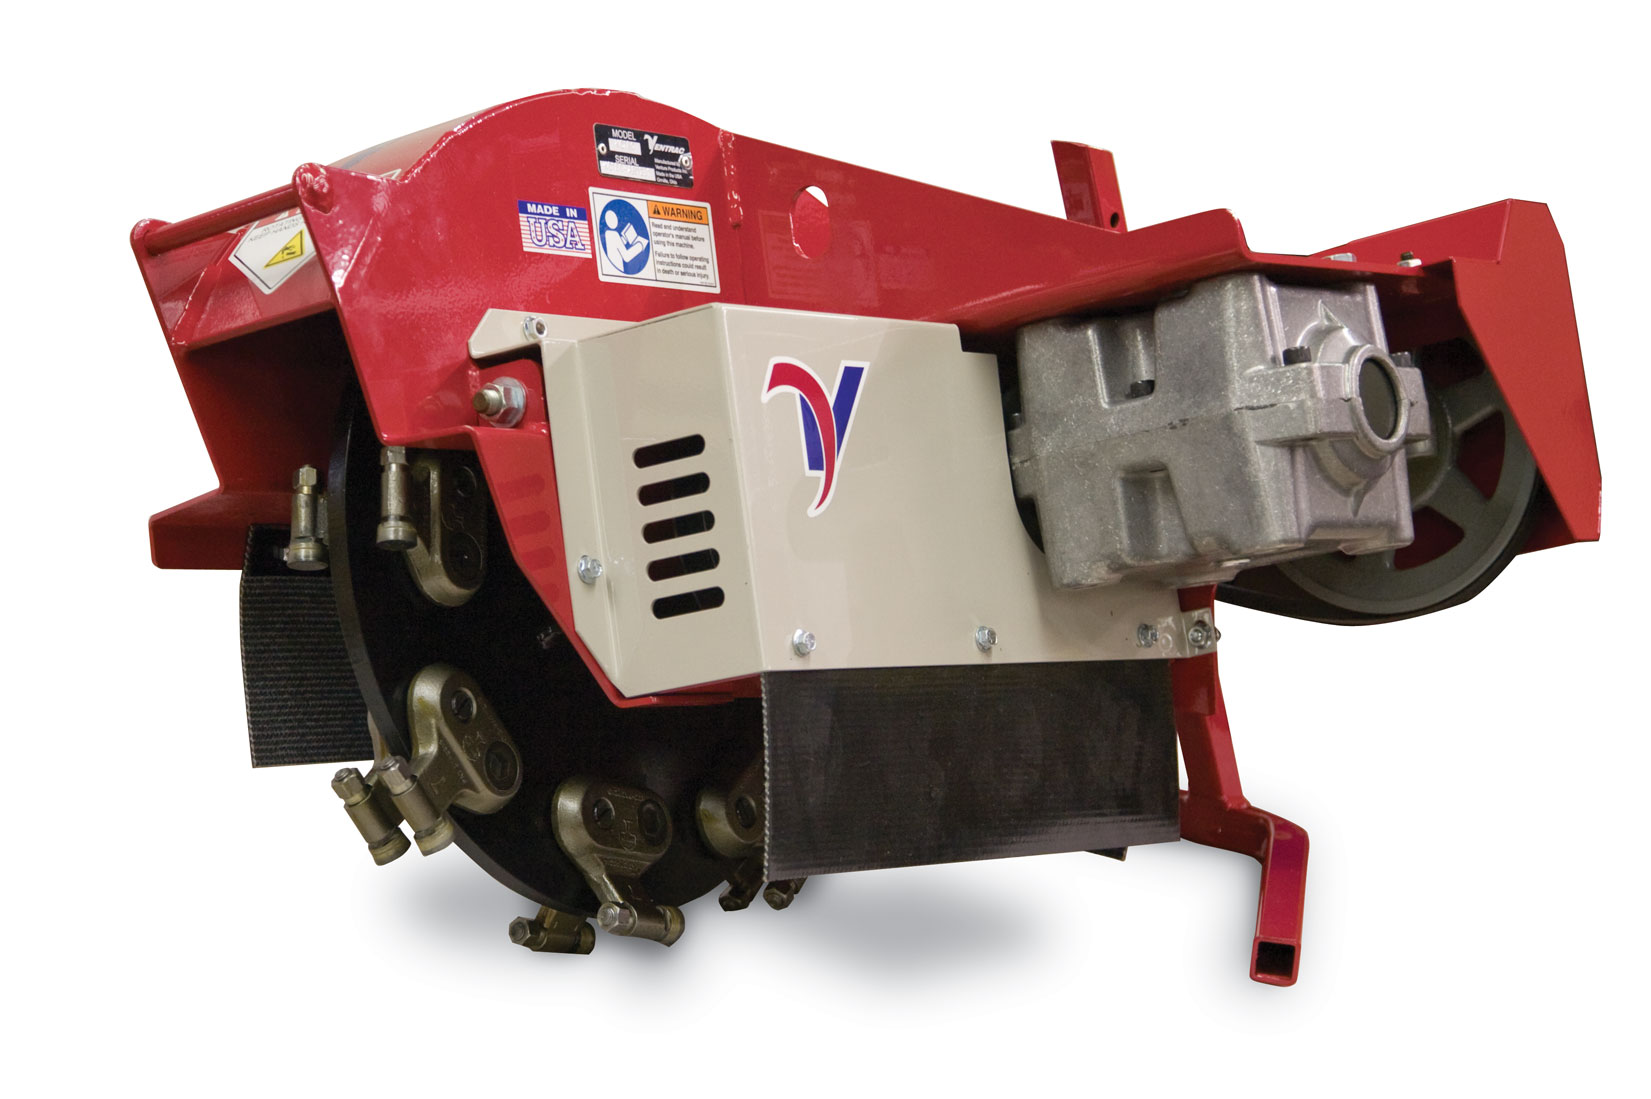 Ventrac Stump Grinder Enhancements